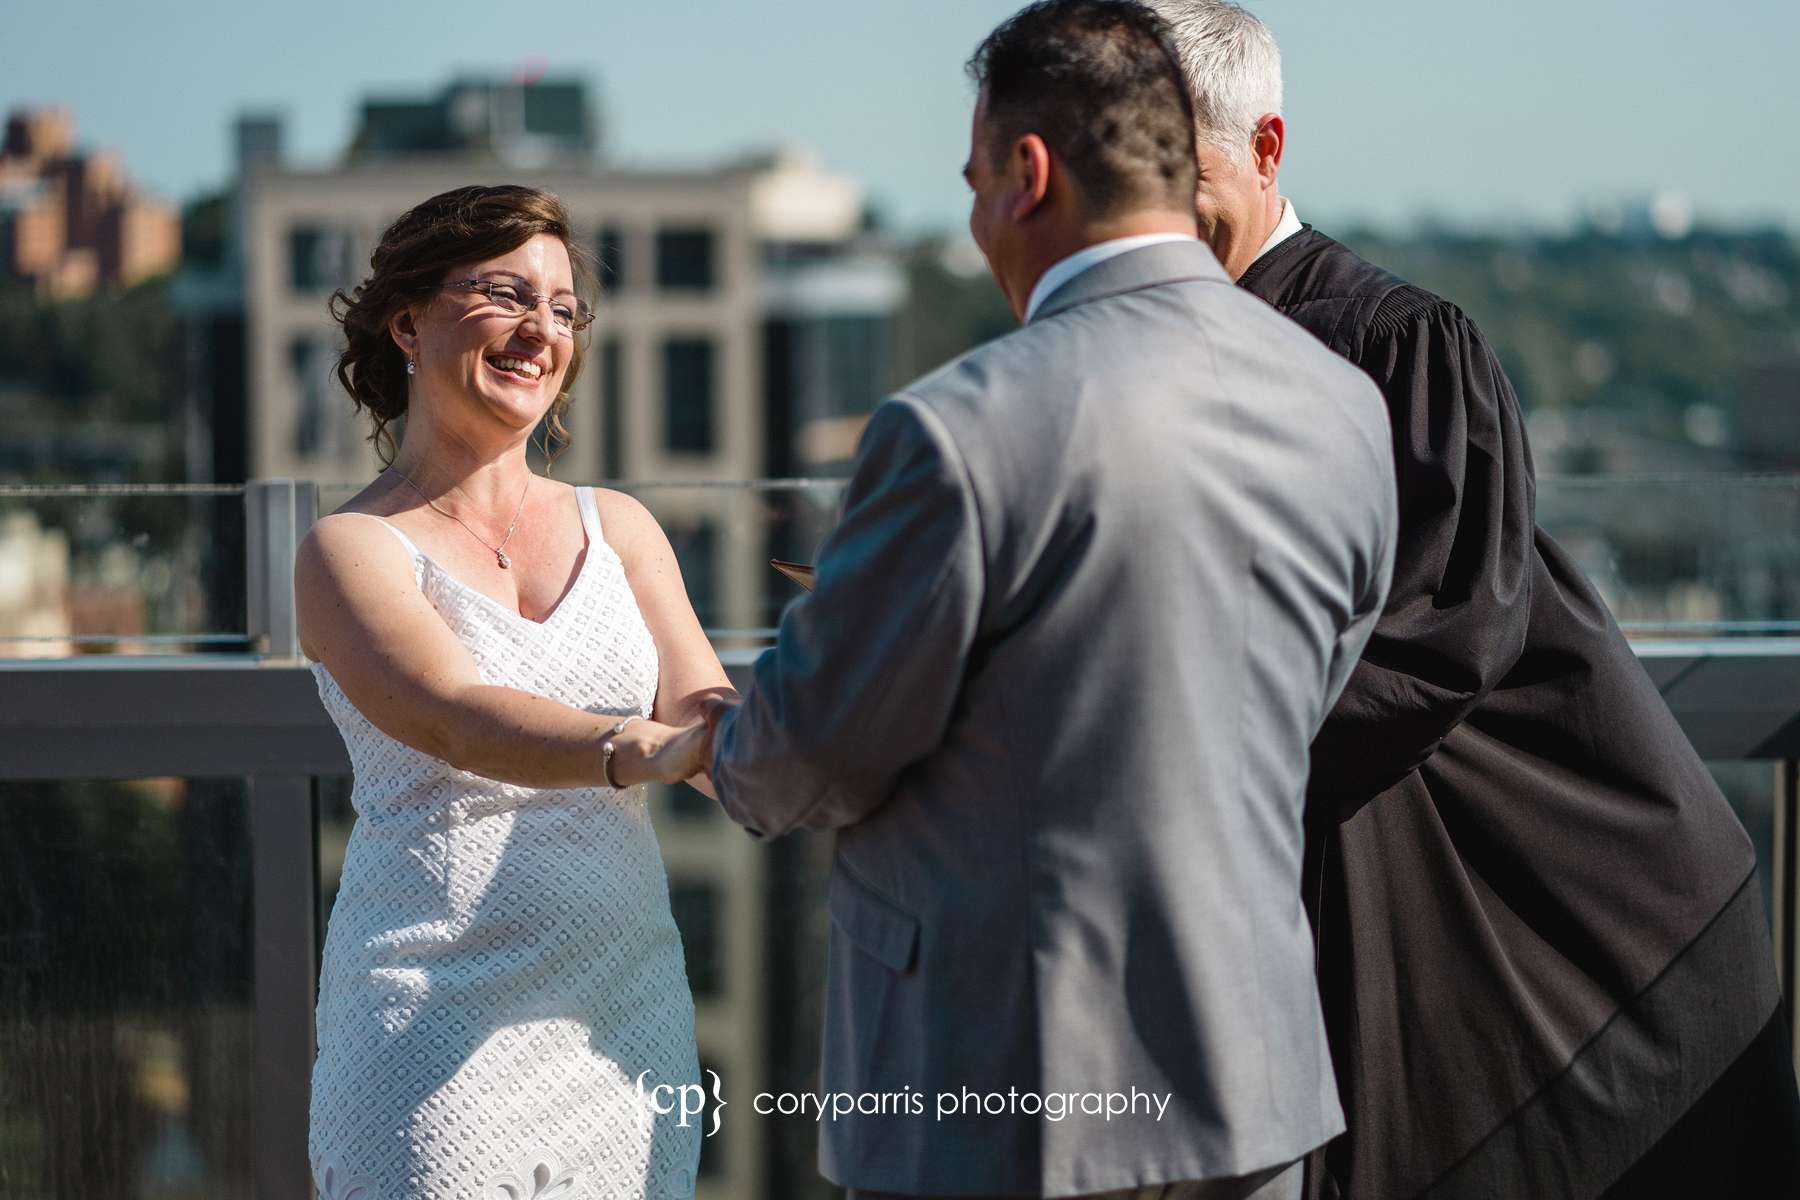 039-seattle-courthouse-wedding.jpg